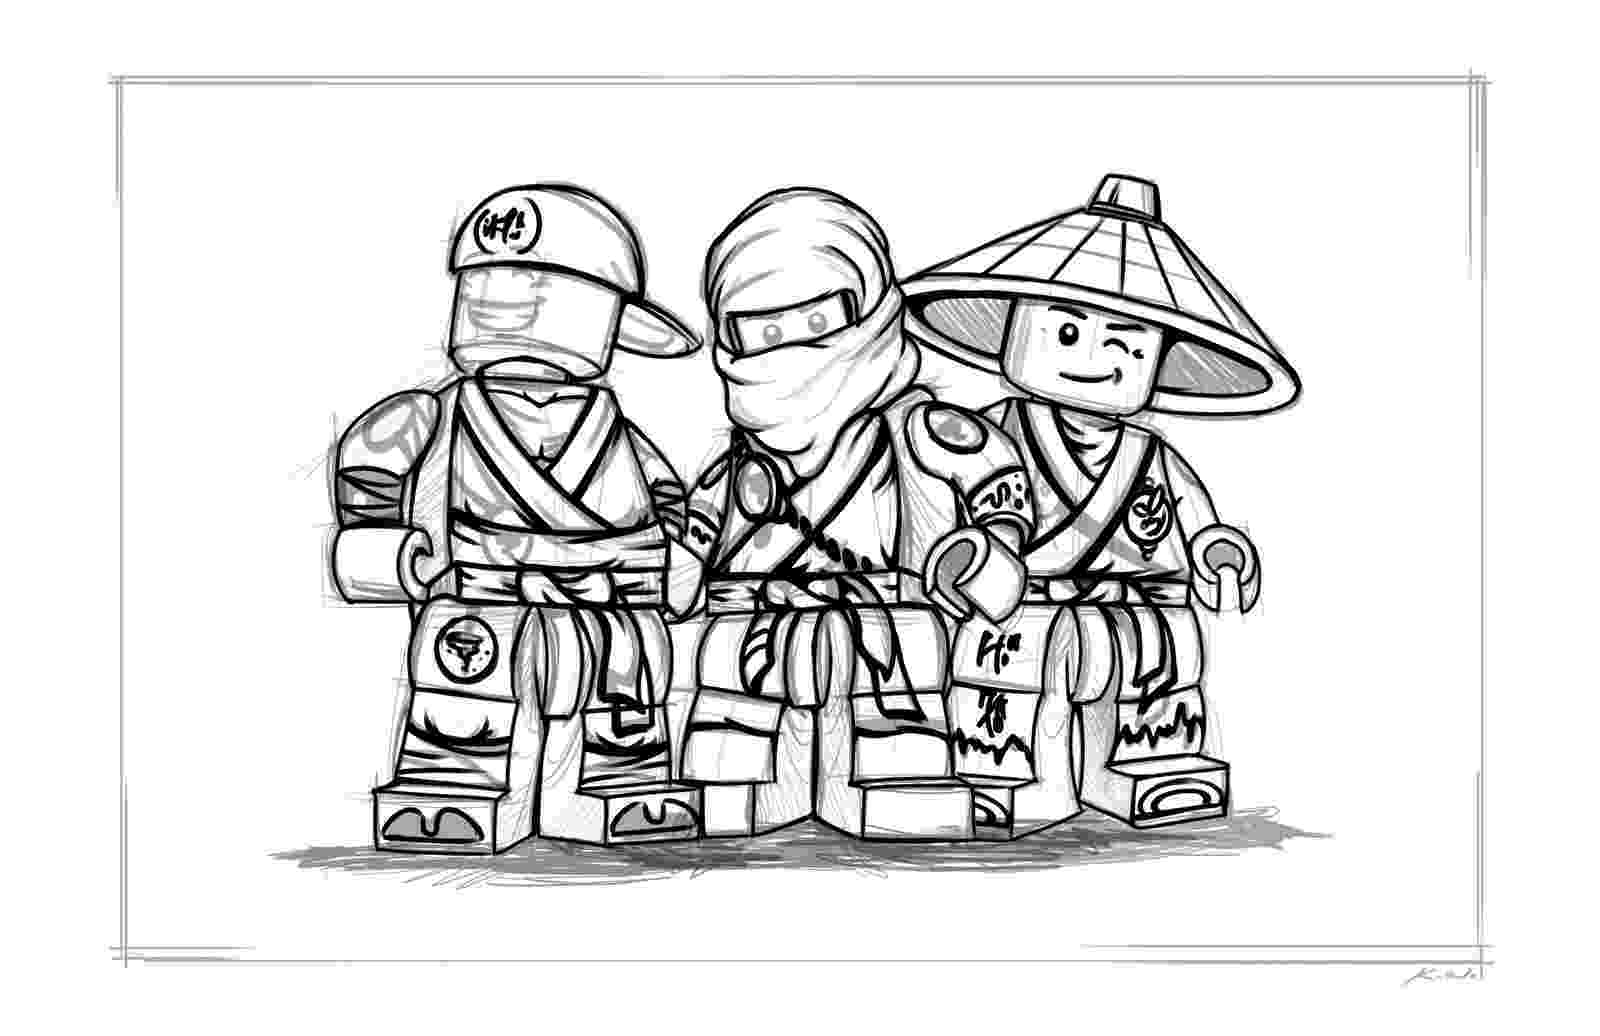 coloring pages of legos lego ninjago coloring pages free printable pictures legos pages coloring of